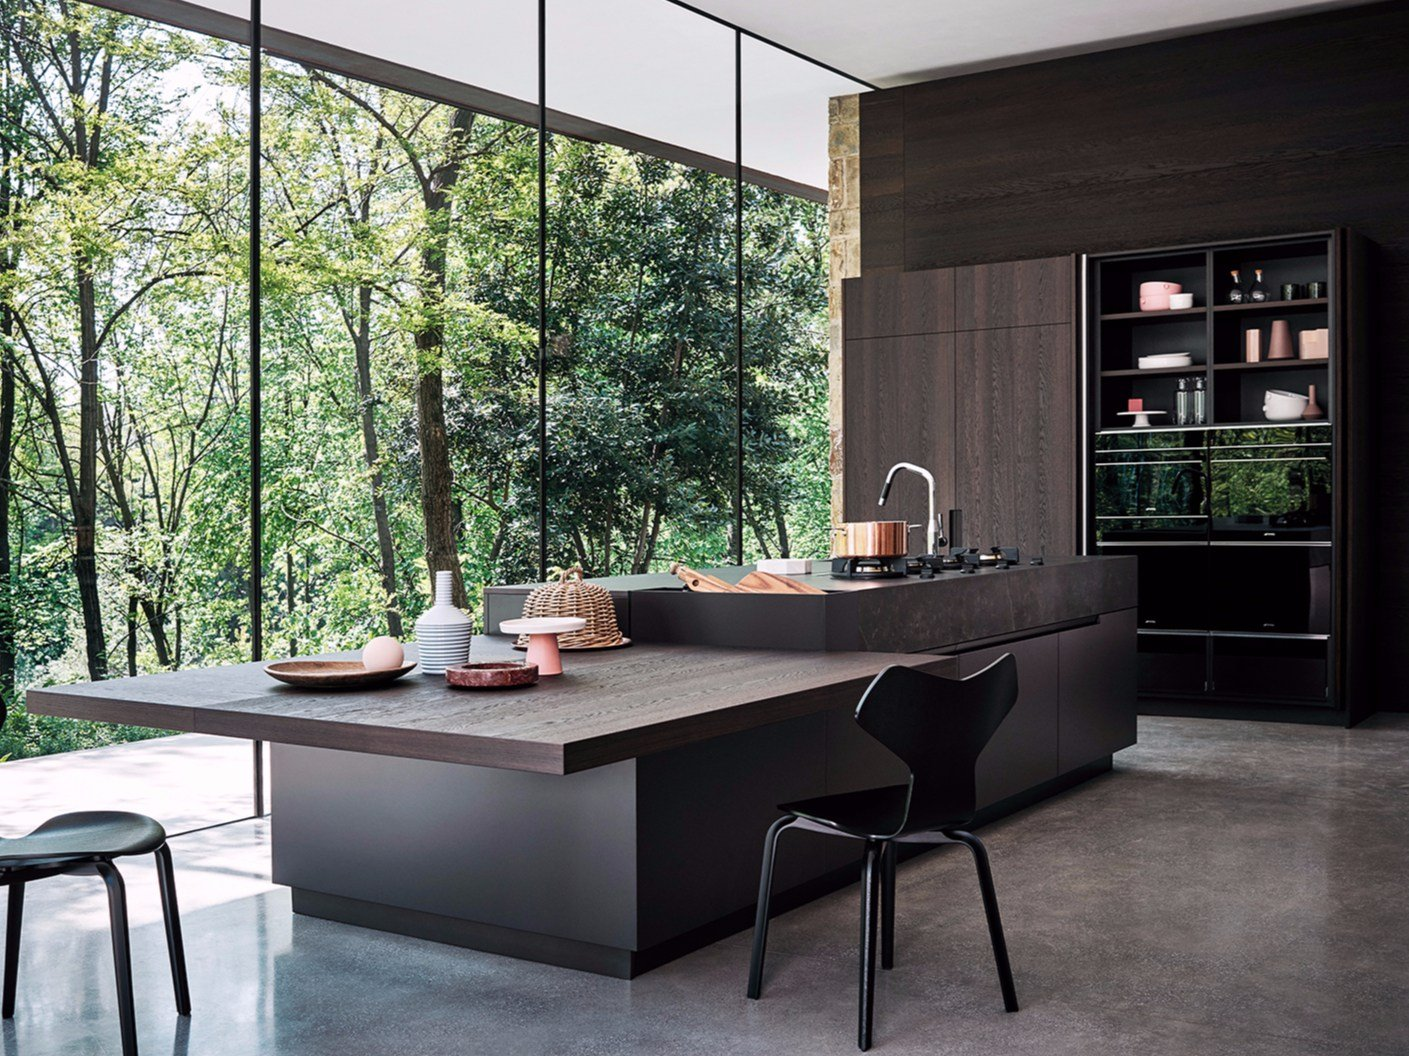 oak fitted kitchen with island maxima 2 2 composition 1 by cesar arredamenti. Black Bedroom Furniture Sets. Home Design Ideas